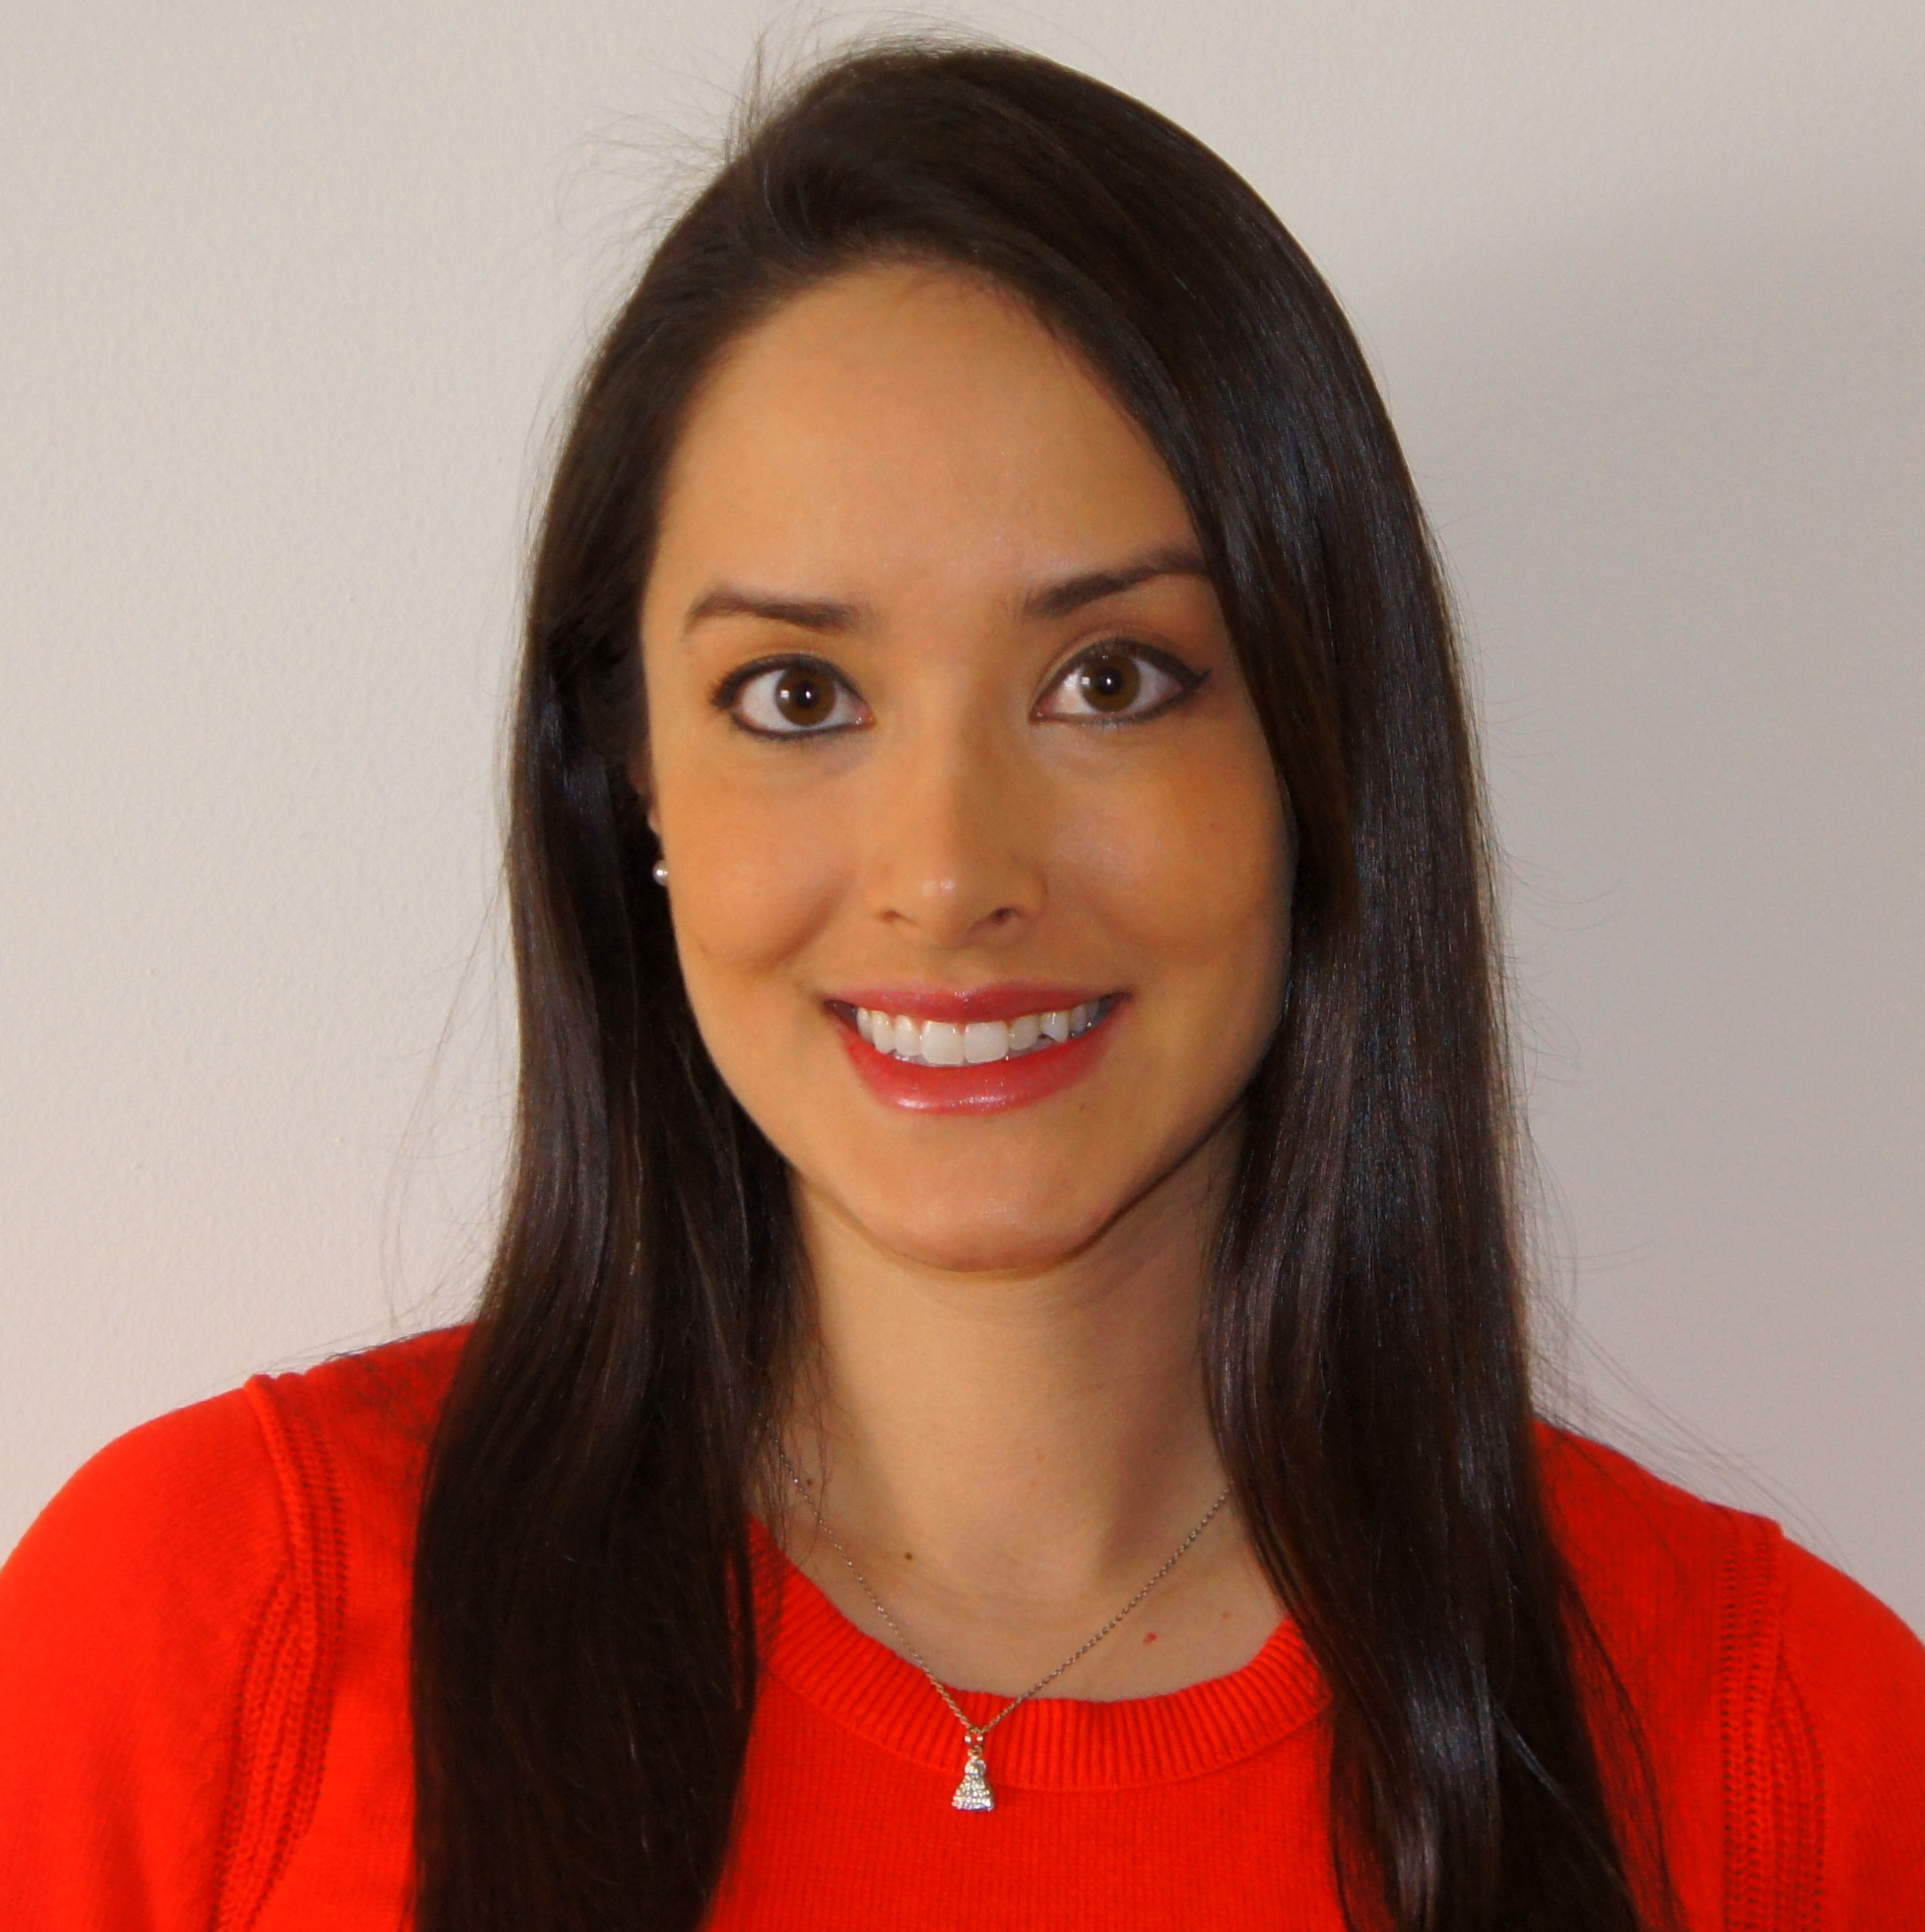 image from The Department Welcomes Lauren Nakazawa, MD